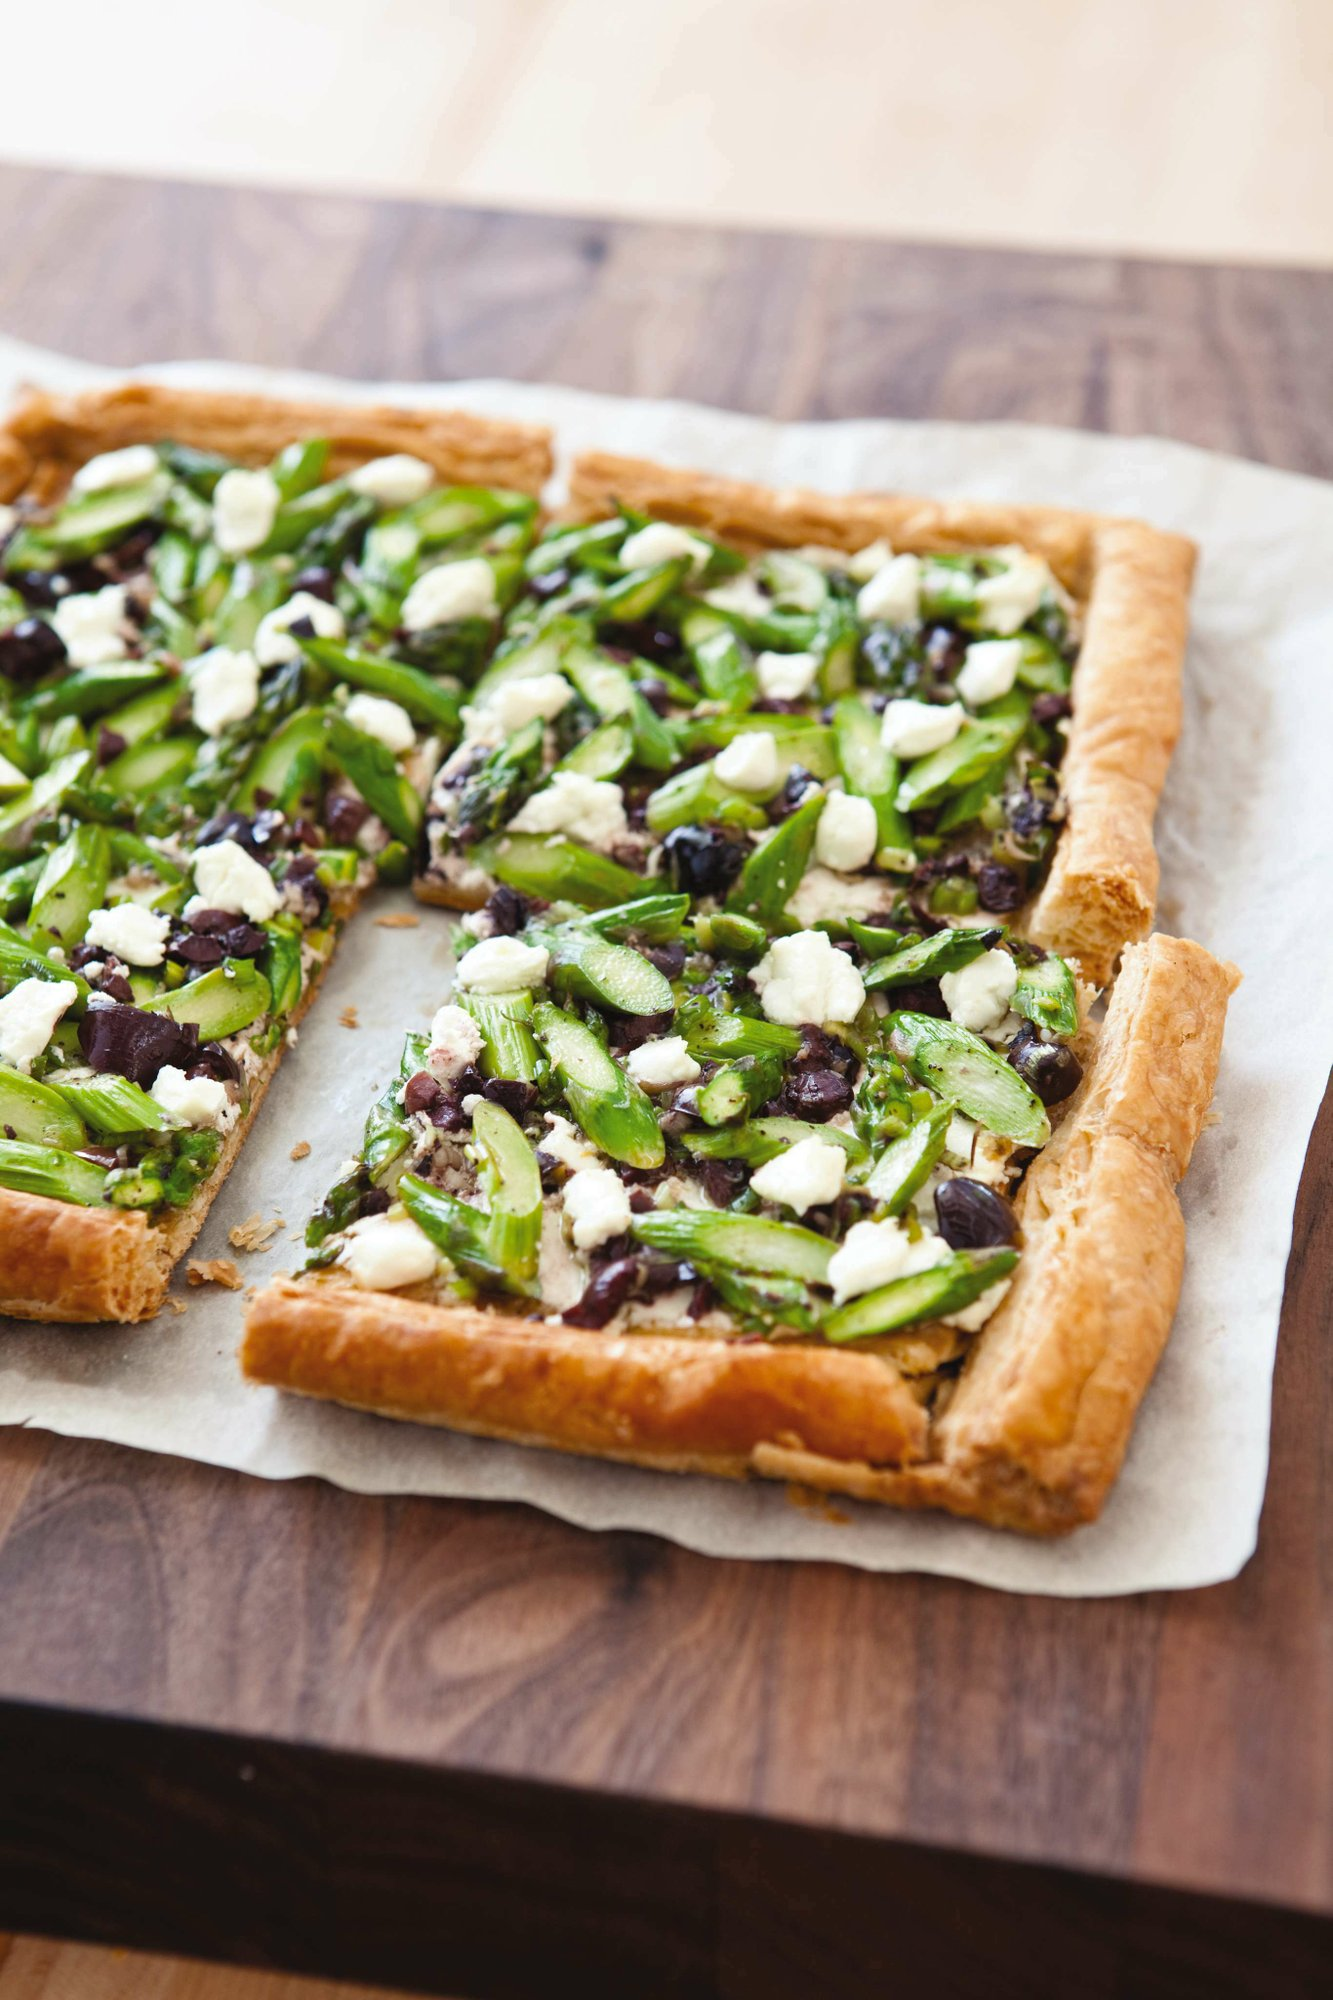 What's good for lunch, brunch or dinner? This asparagus tart